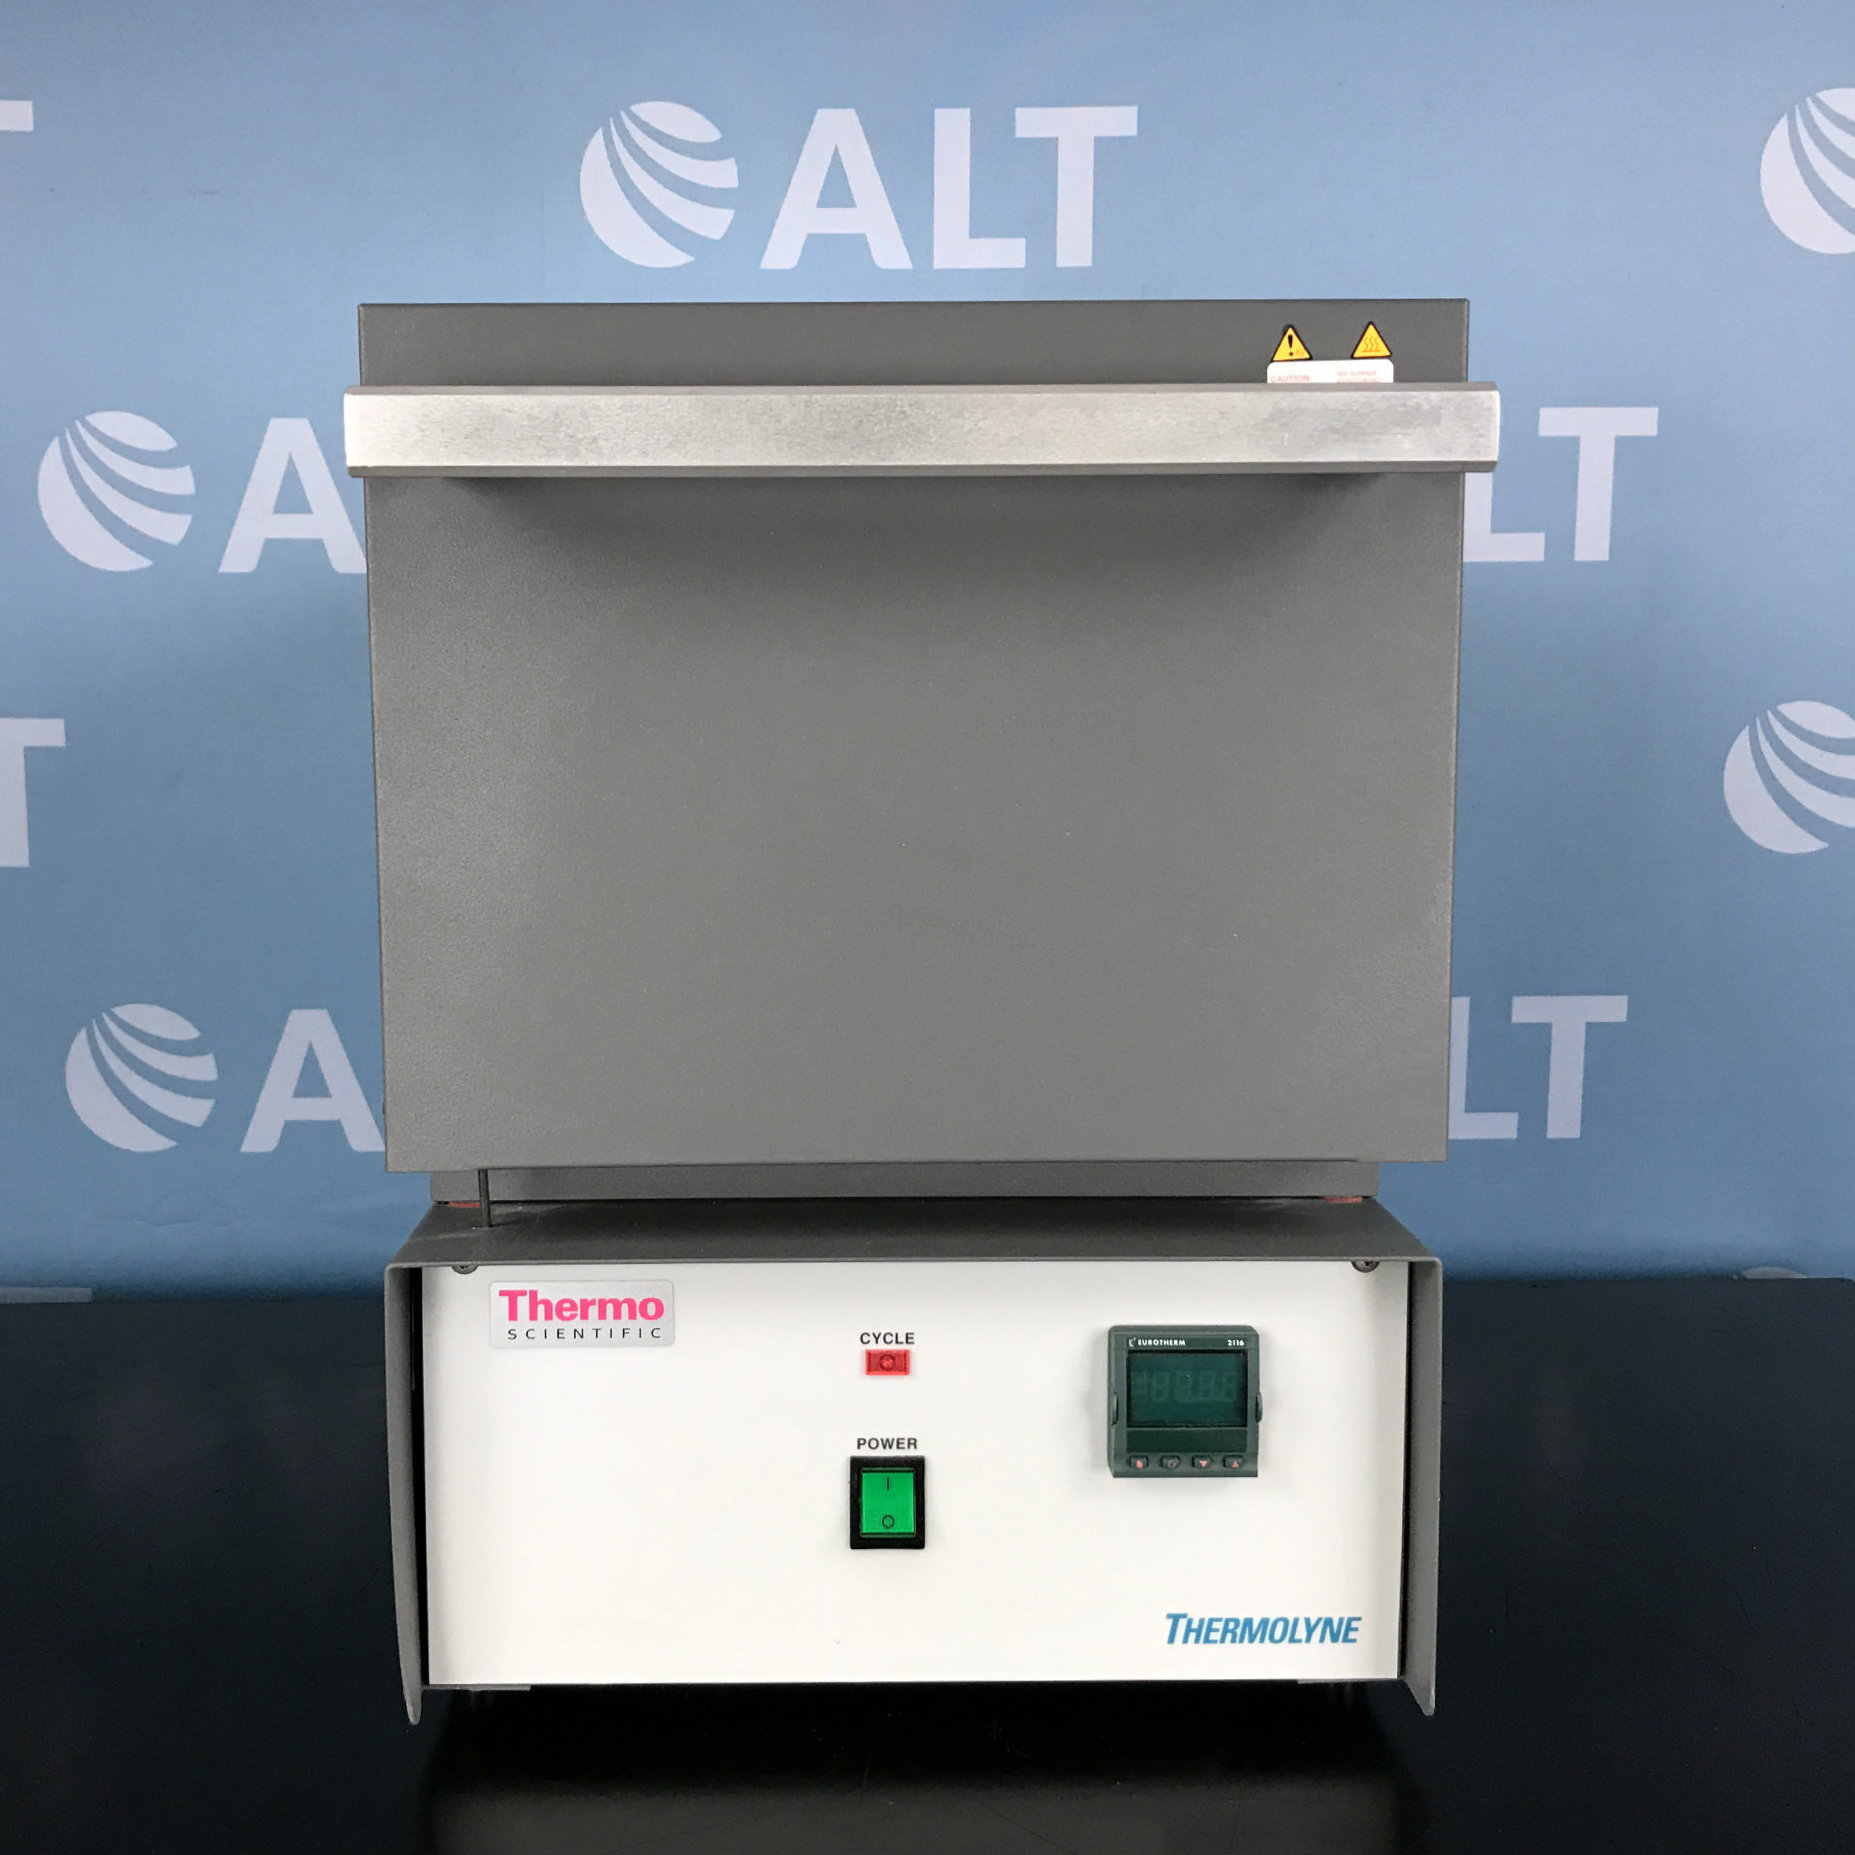 Thermolyne F48028 Benchtop Muffle Furnace Image